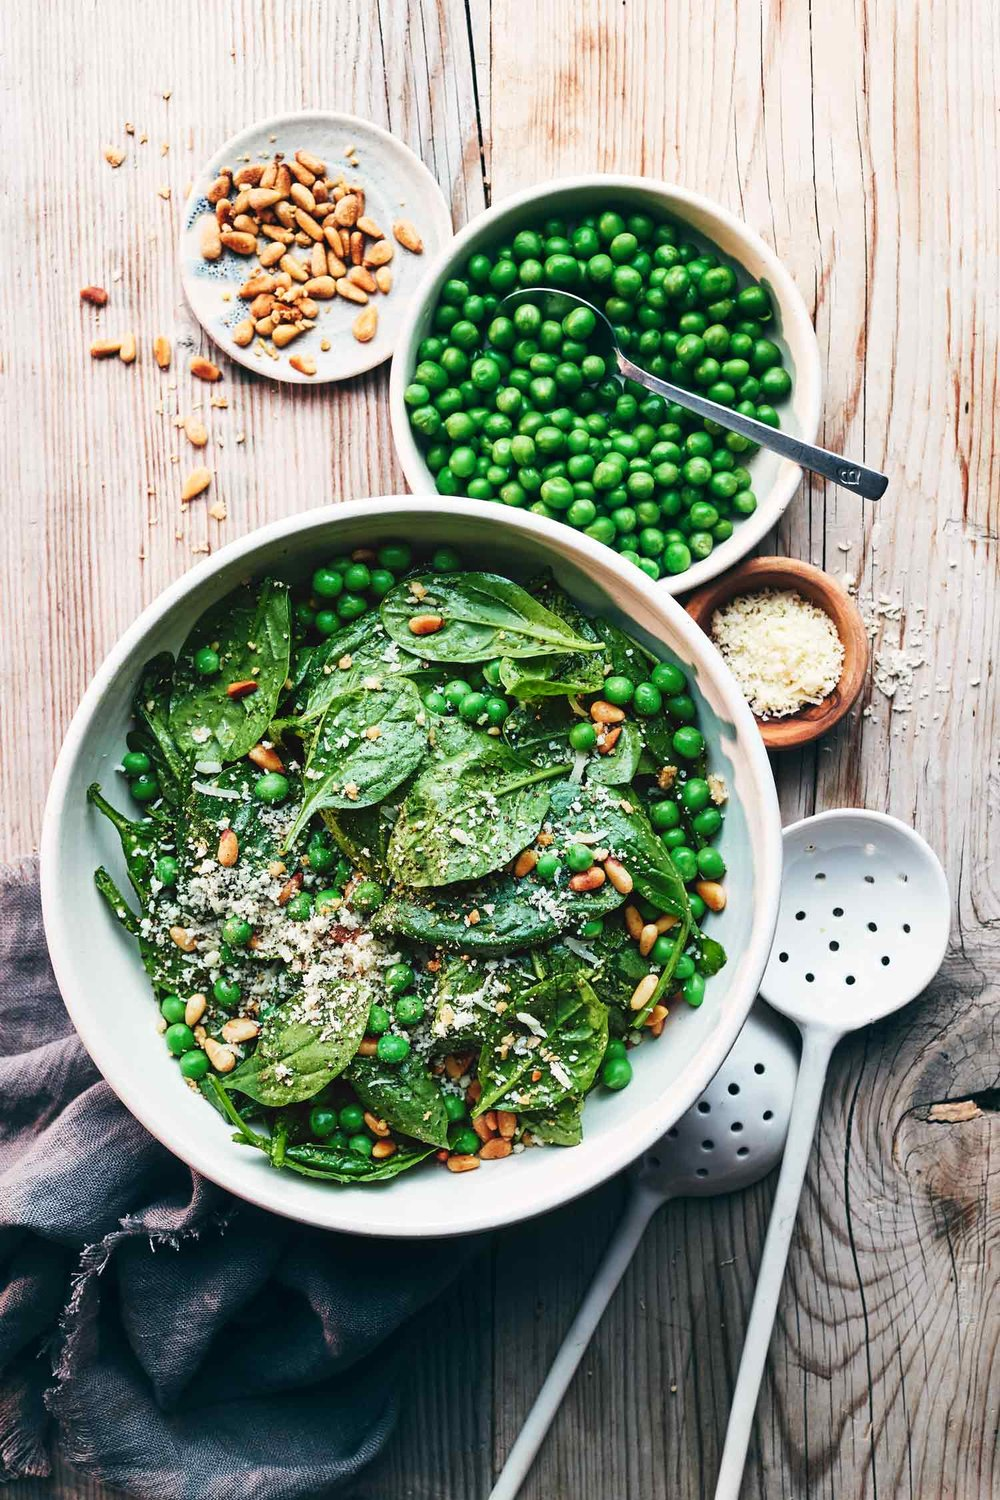 Pea & Pesto Spinach Salad | Evergreen Kitchen | Gluten Free, Vegan (option)